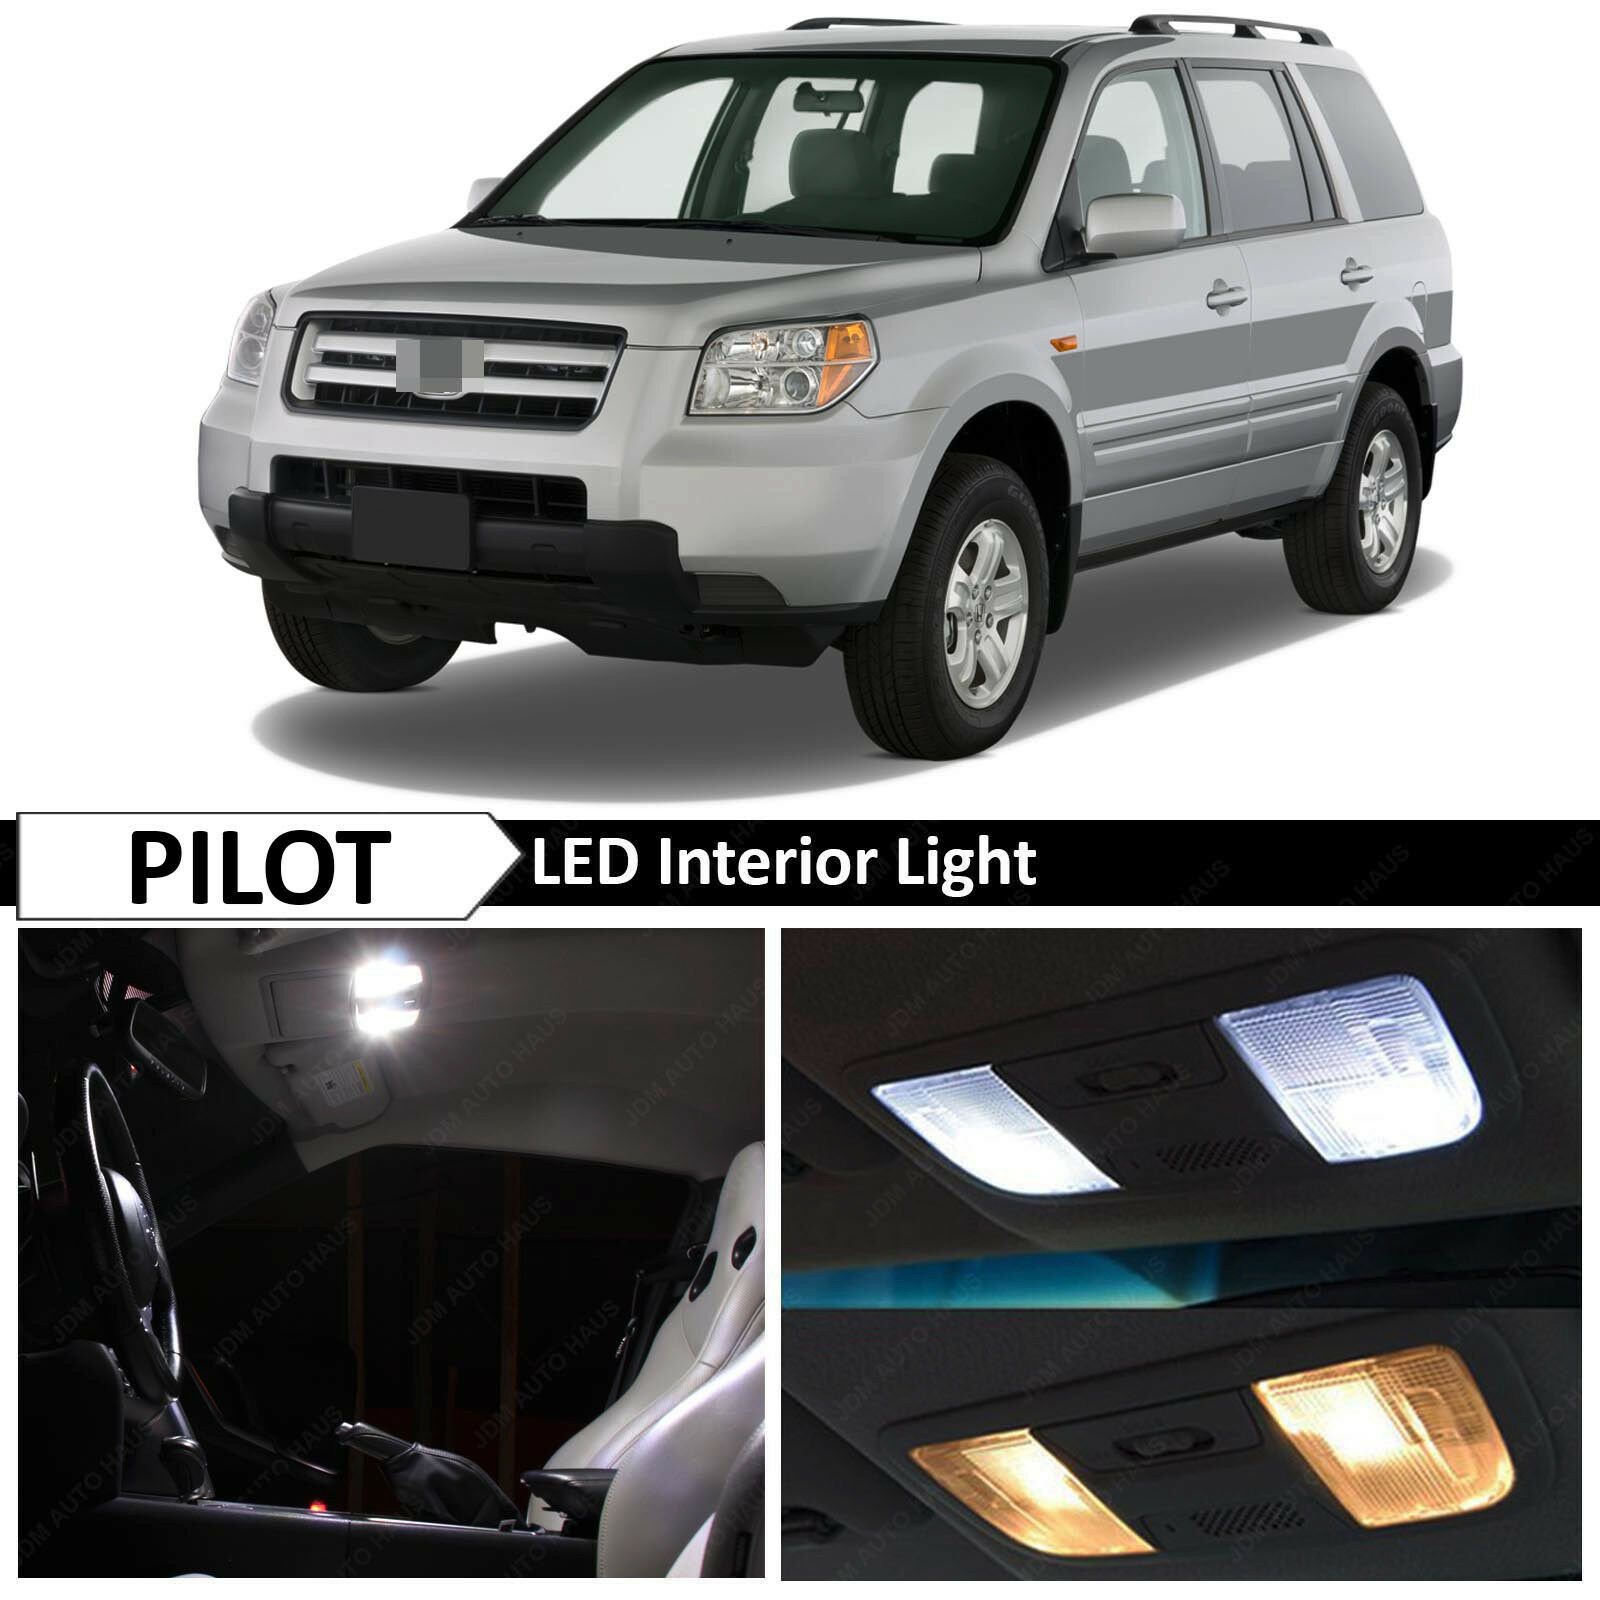 Honda Pilot 2008 White Images Galleries With A Bite